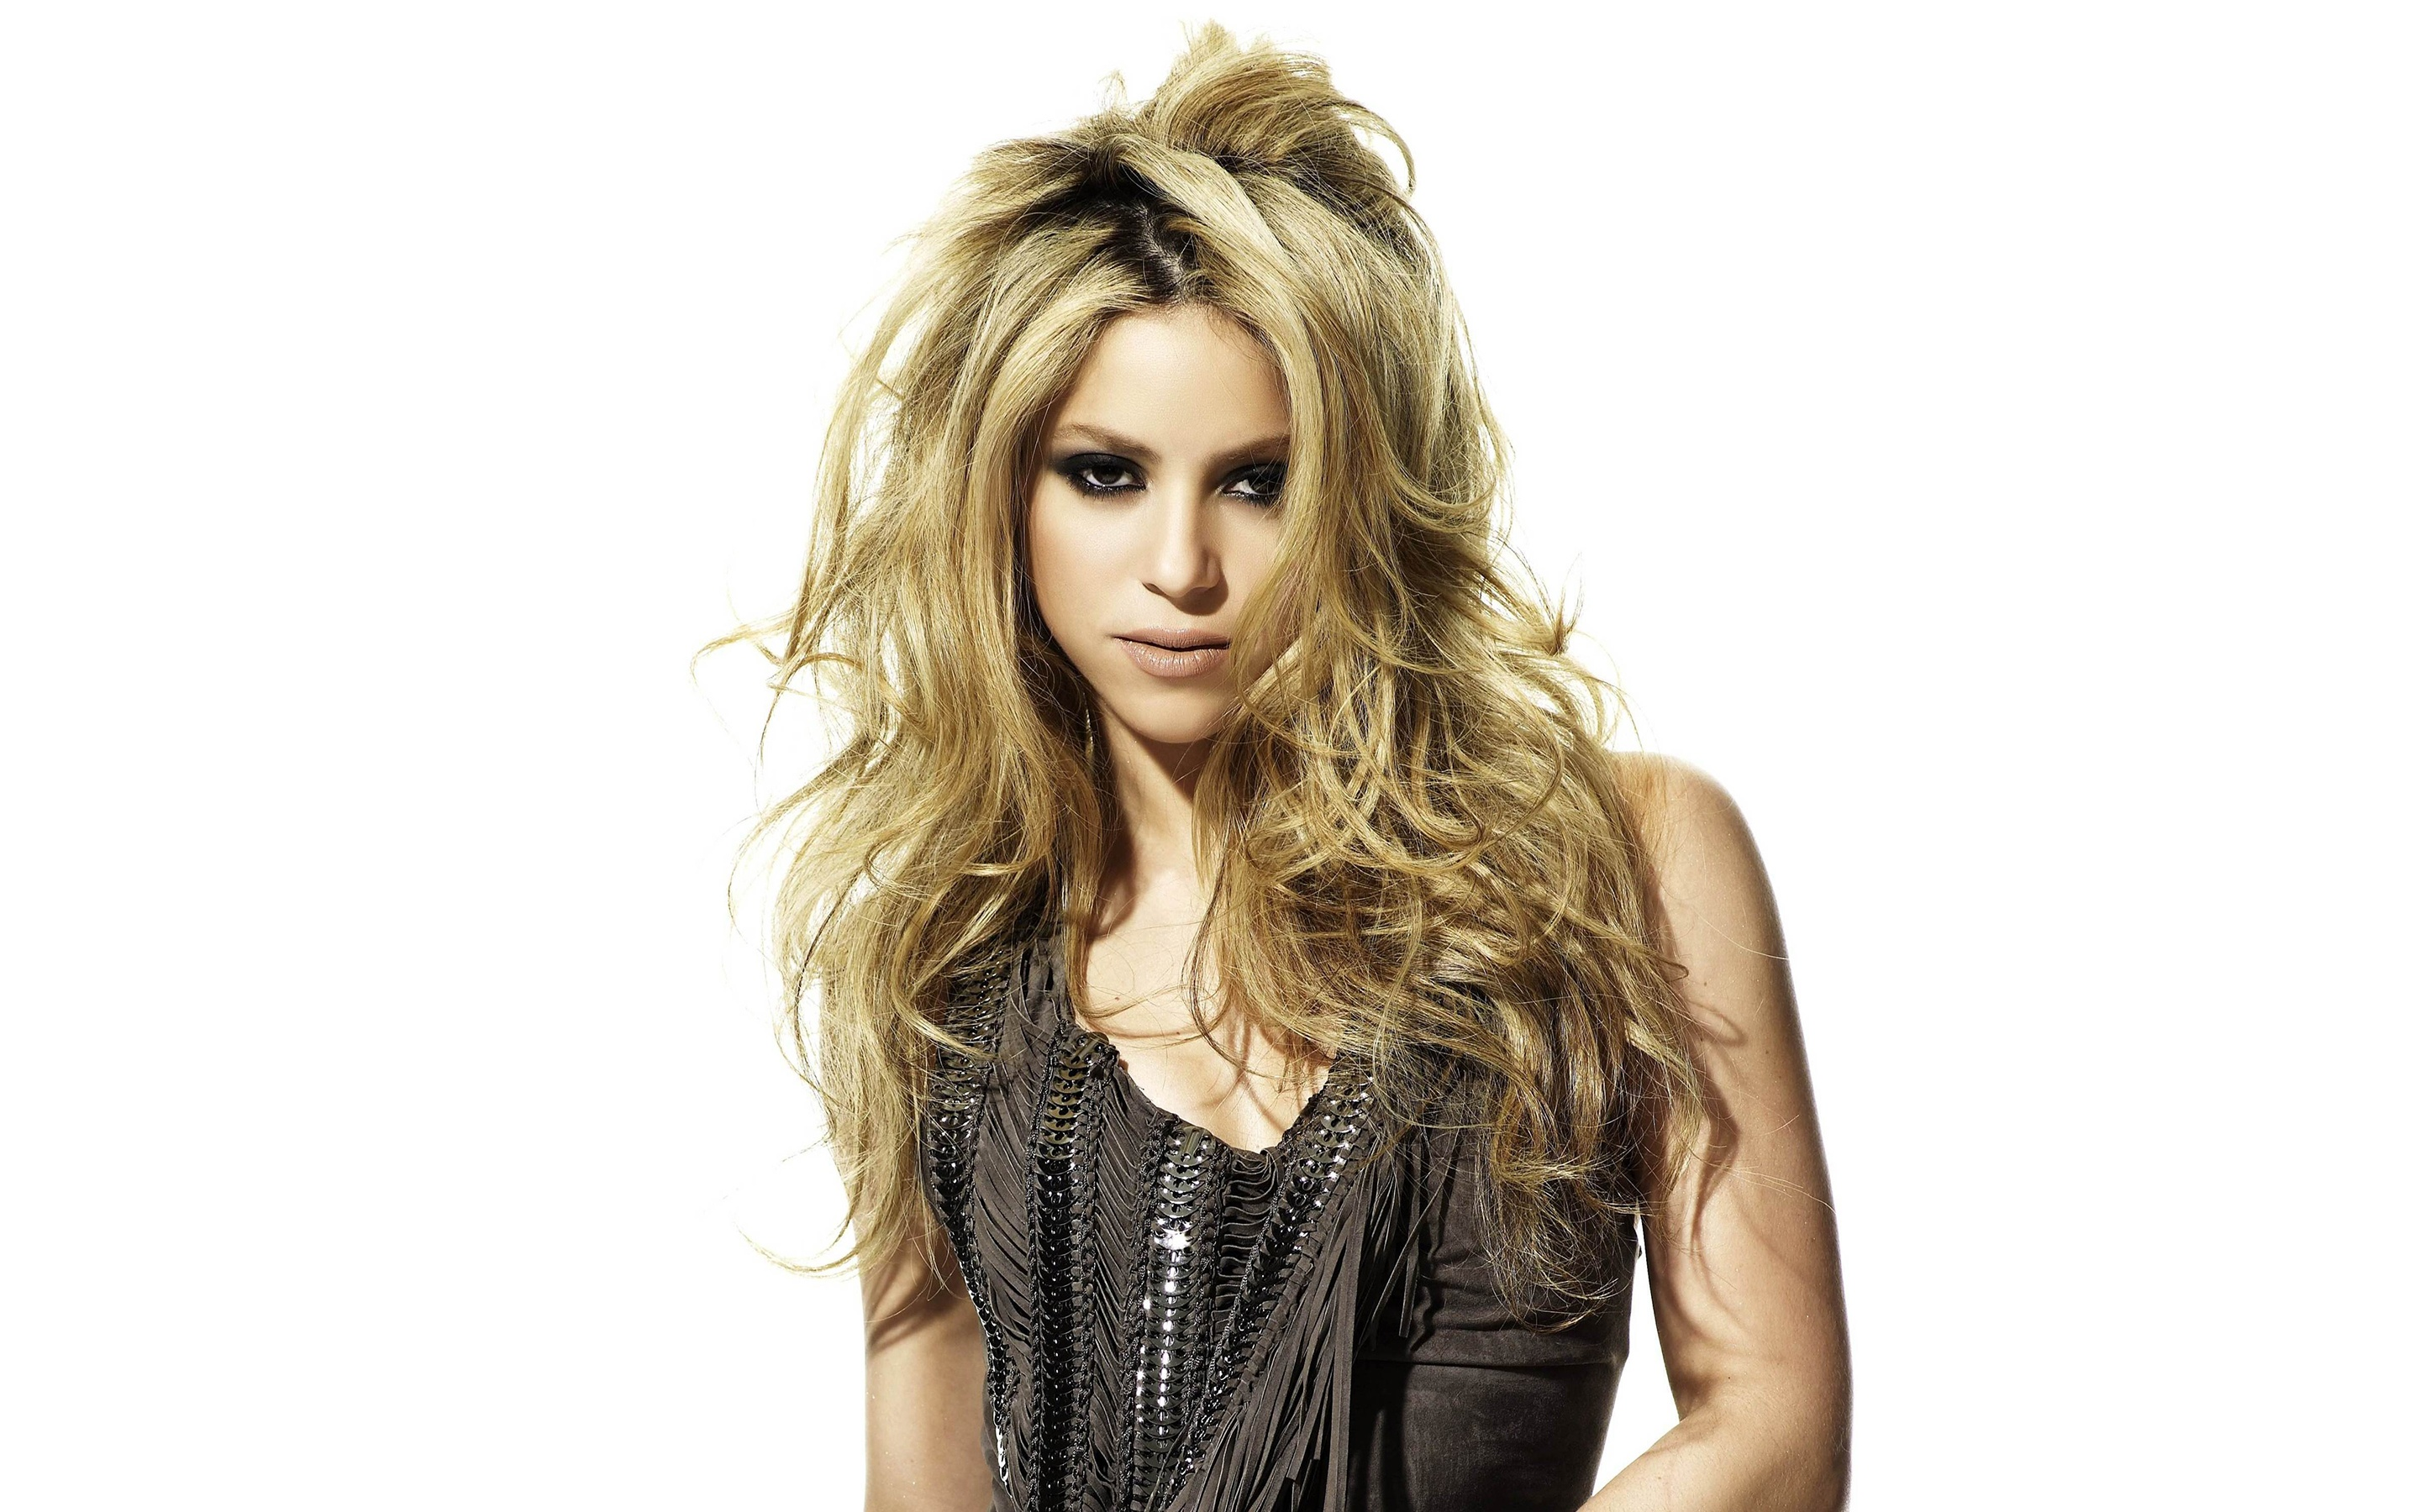 Shakira High Resolution Wallpapers (Zackary Watkin, 2880x1800)